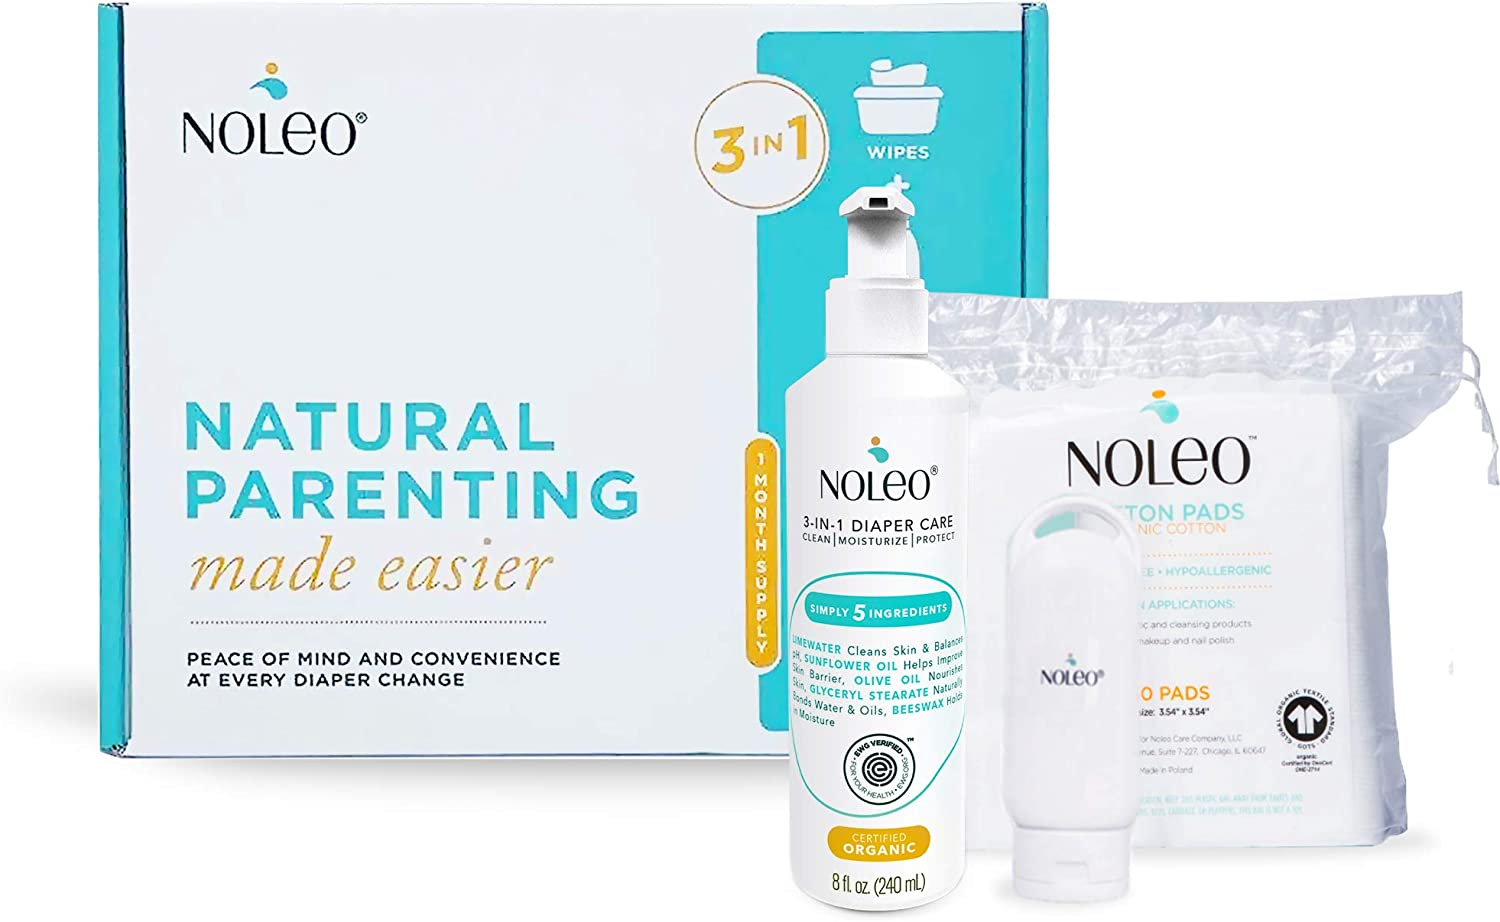 3 in 1 Certified Organic and EWG Verified Diaper Care, Baby Care Skin Cleanser, Rash Cream, Moisturizing Lotion - NOLEO (Baby Box): Health & Personal Care